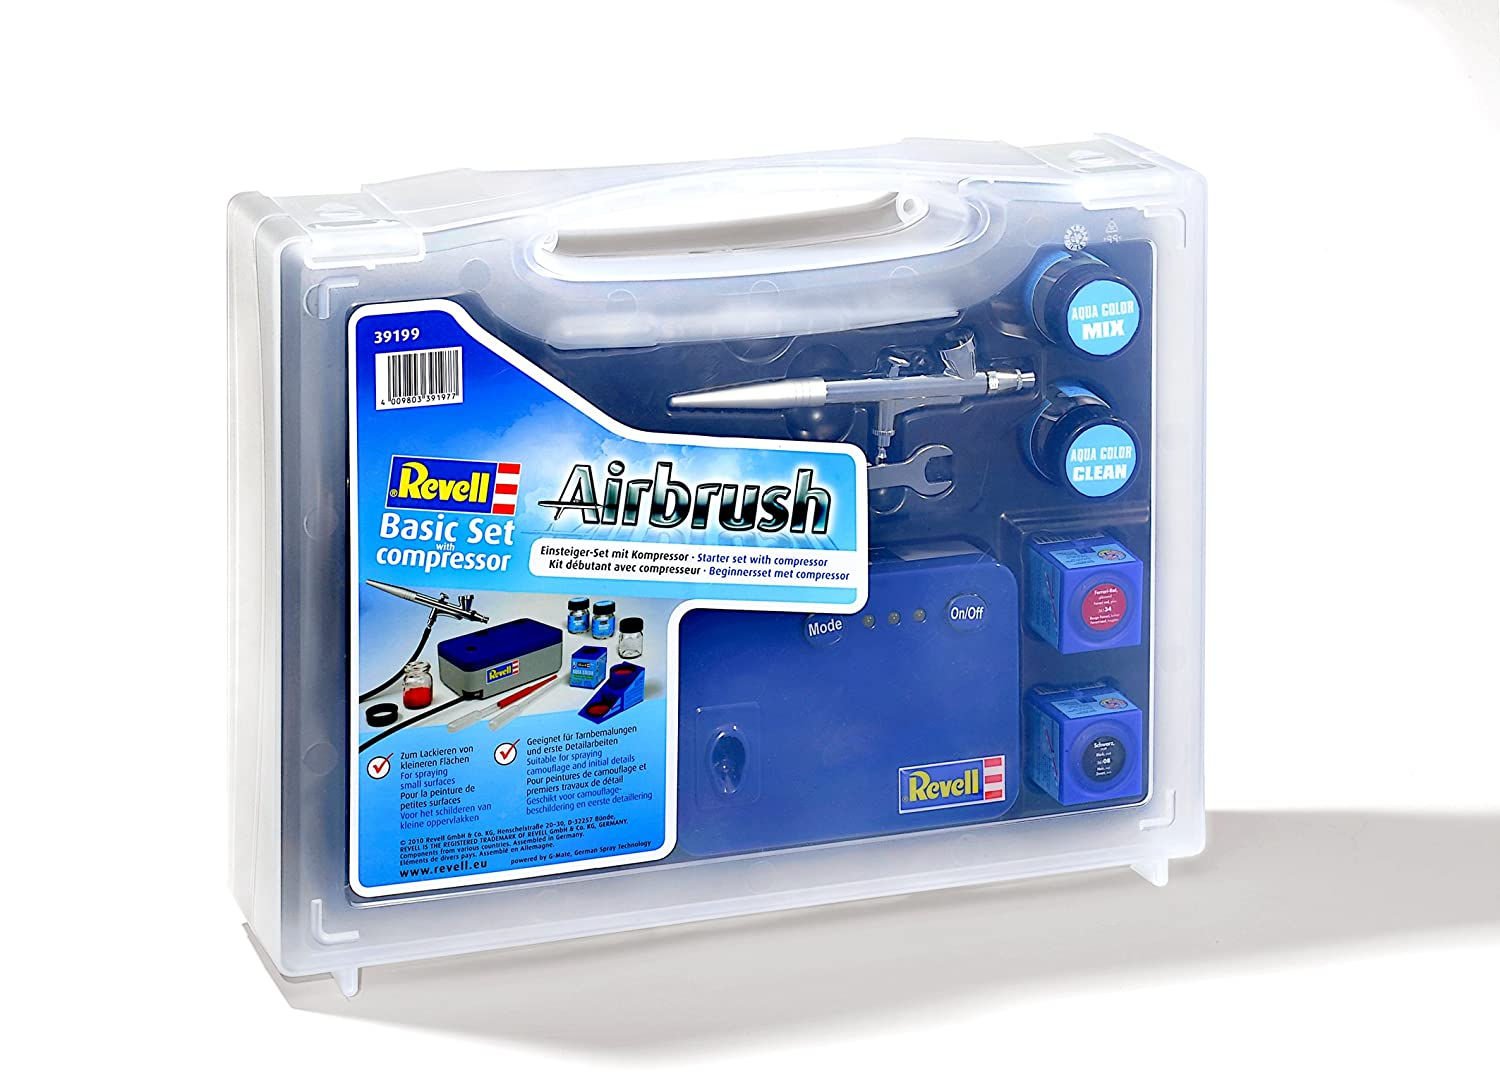 Airbrush Kompressor Test: Revell Basic Set (39199)